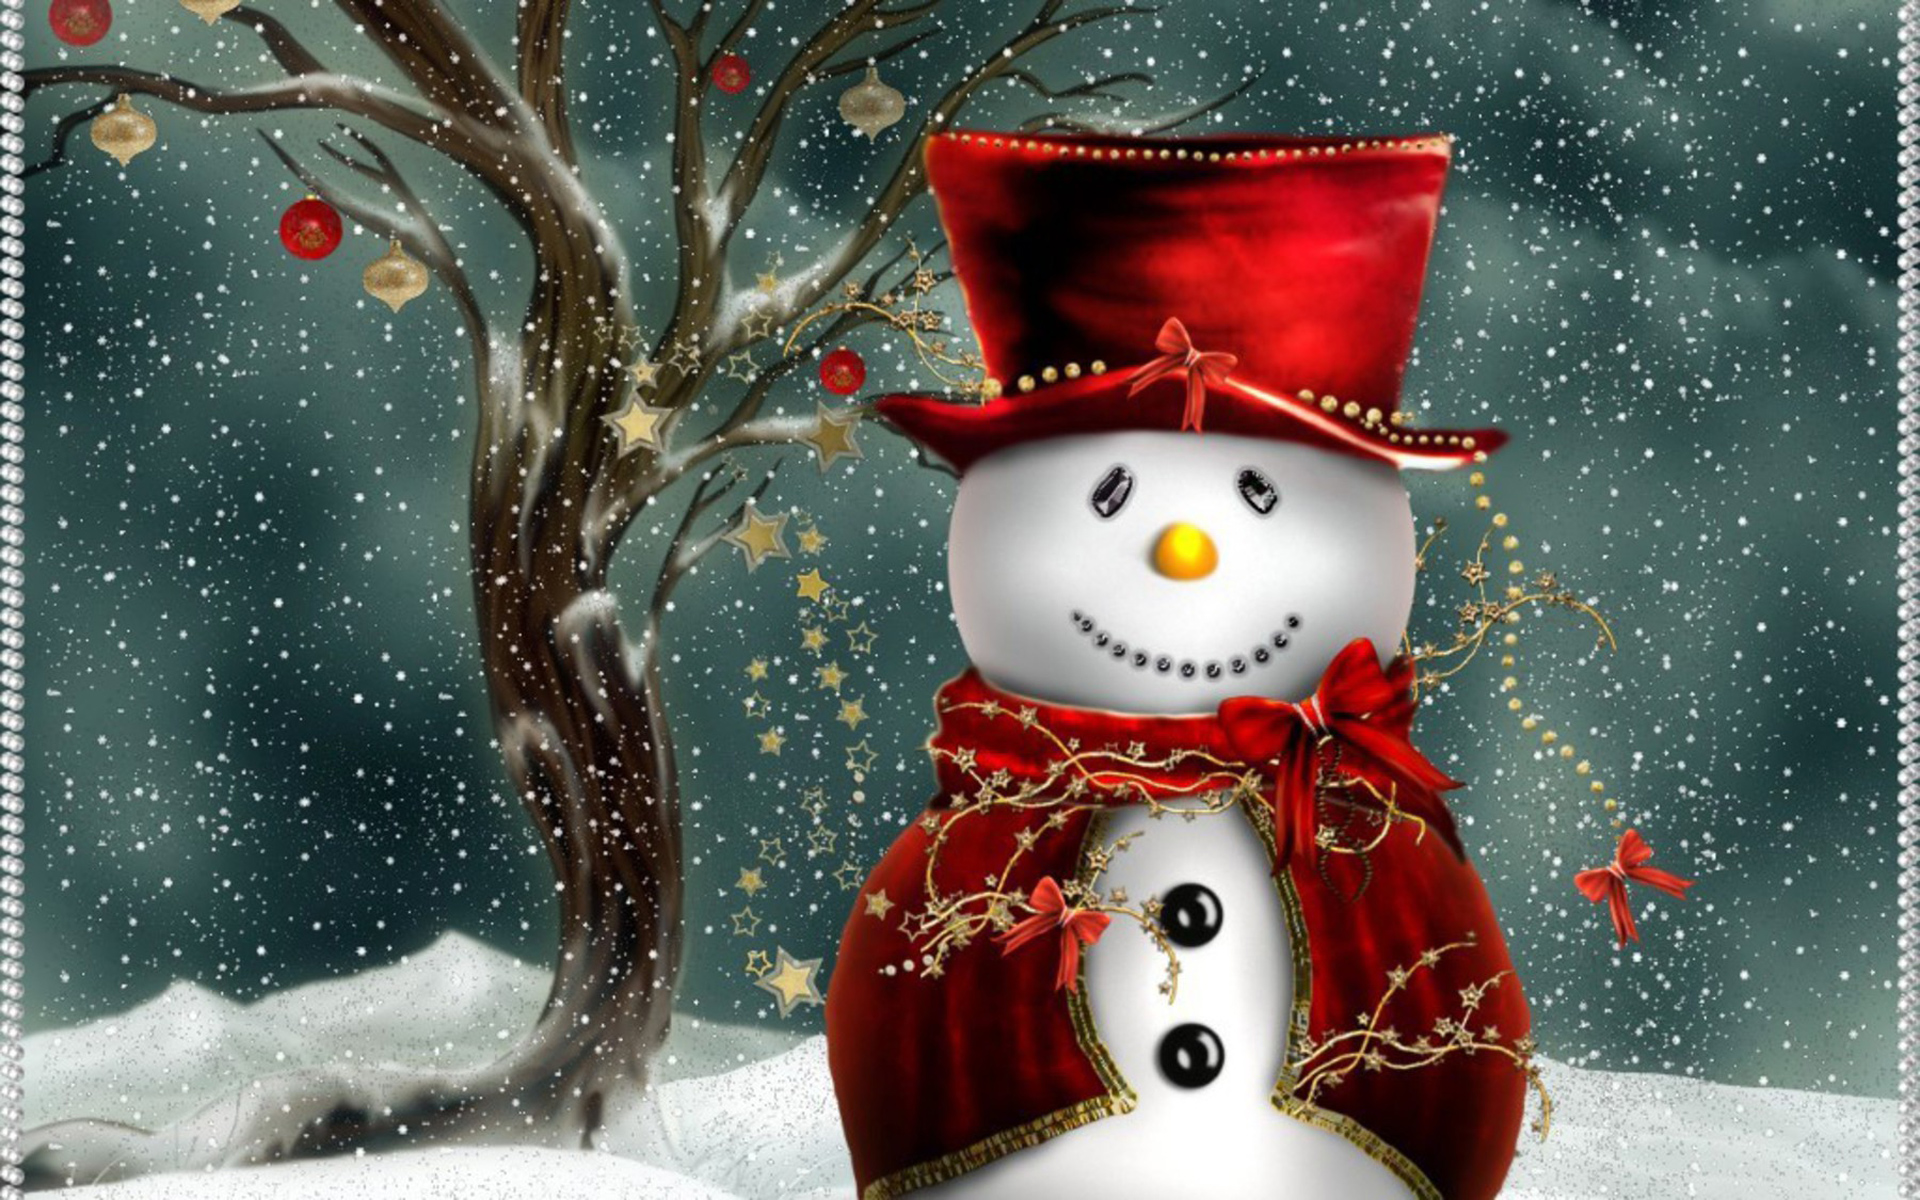 free desktop wallpaper of cute christmas snowman computer desktop 1920x1200